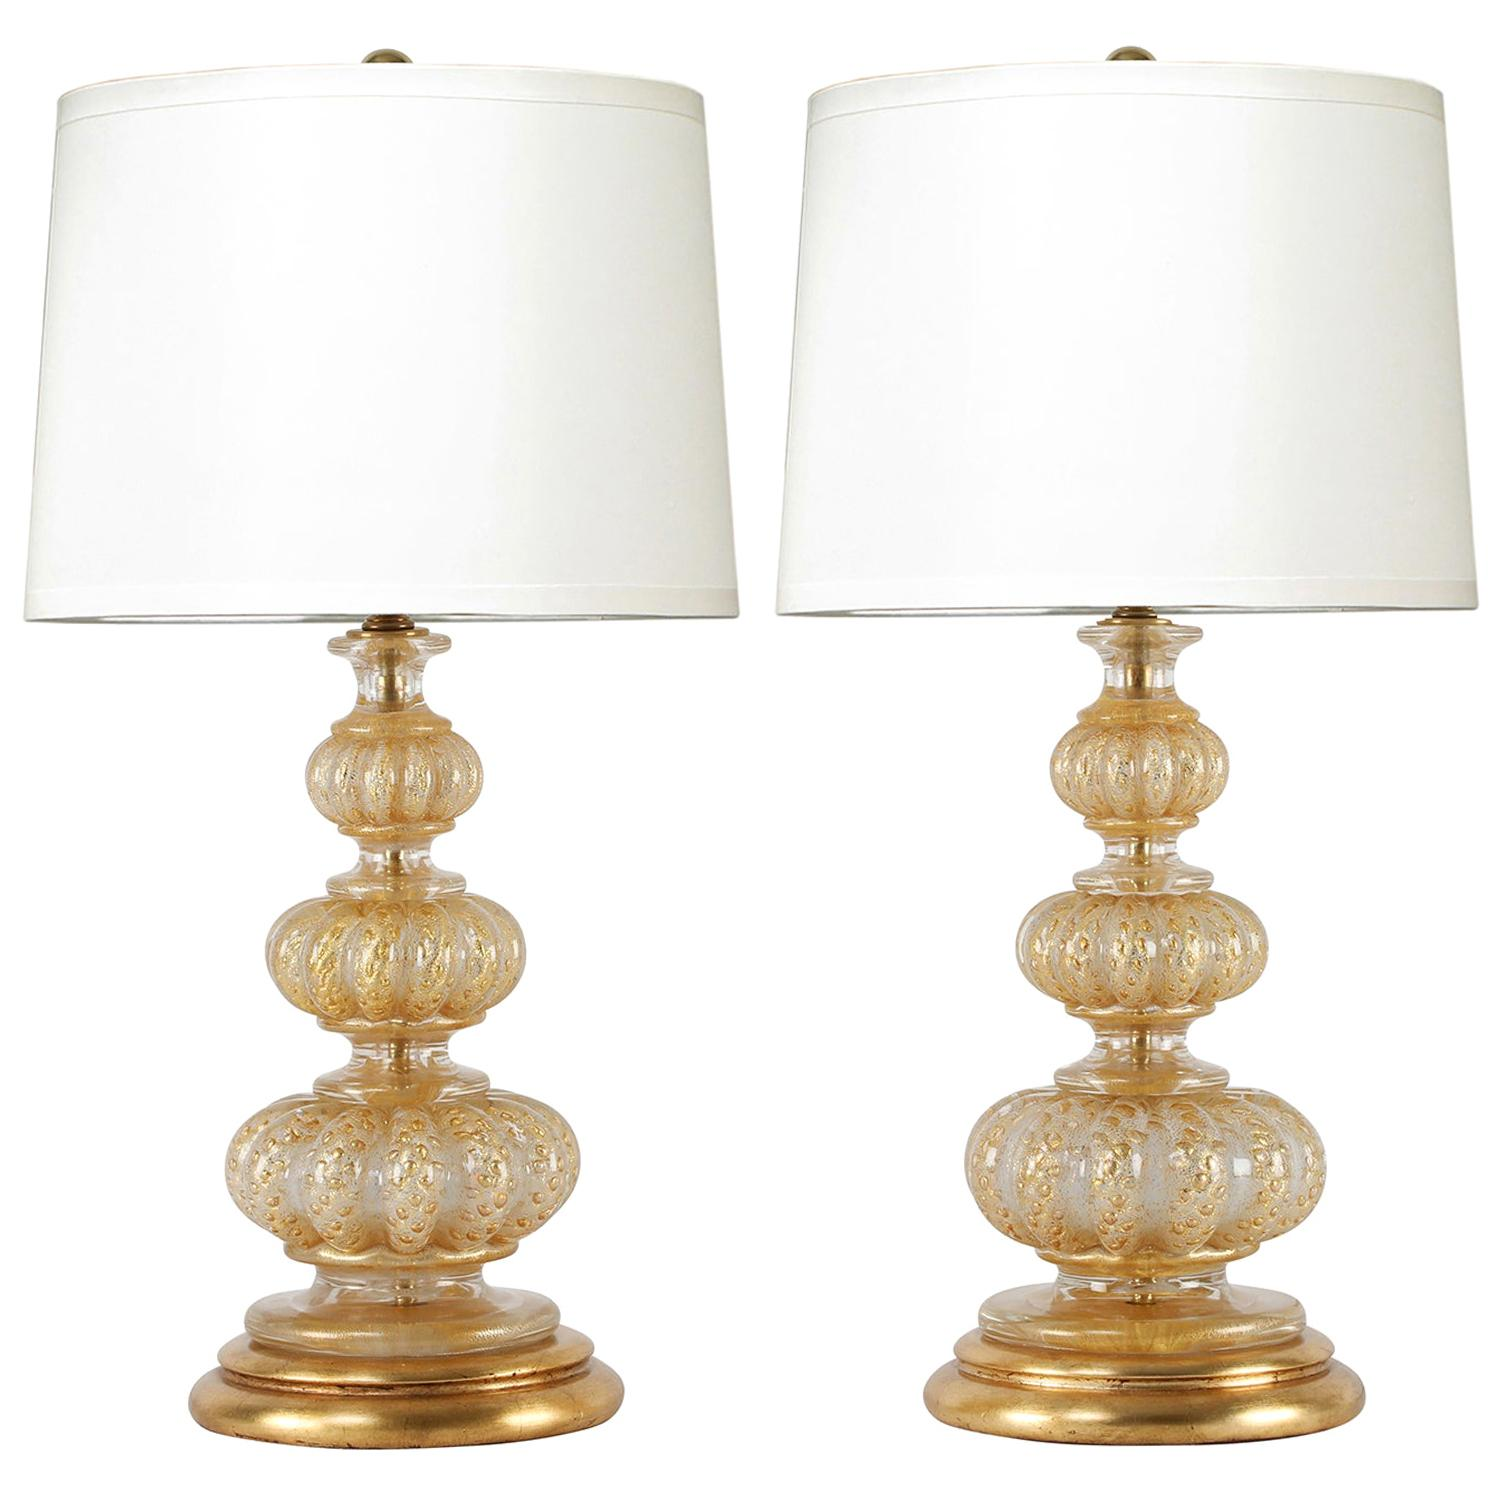 Barovier & Toso Pair of Beautiful Hand Blown Glass Table Lamps, 1950s